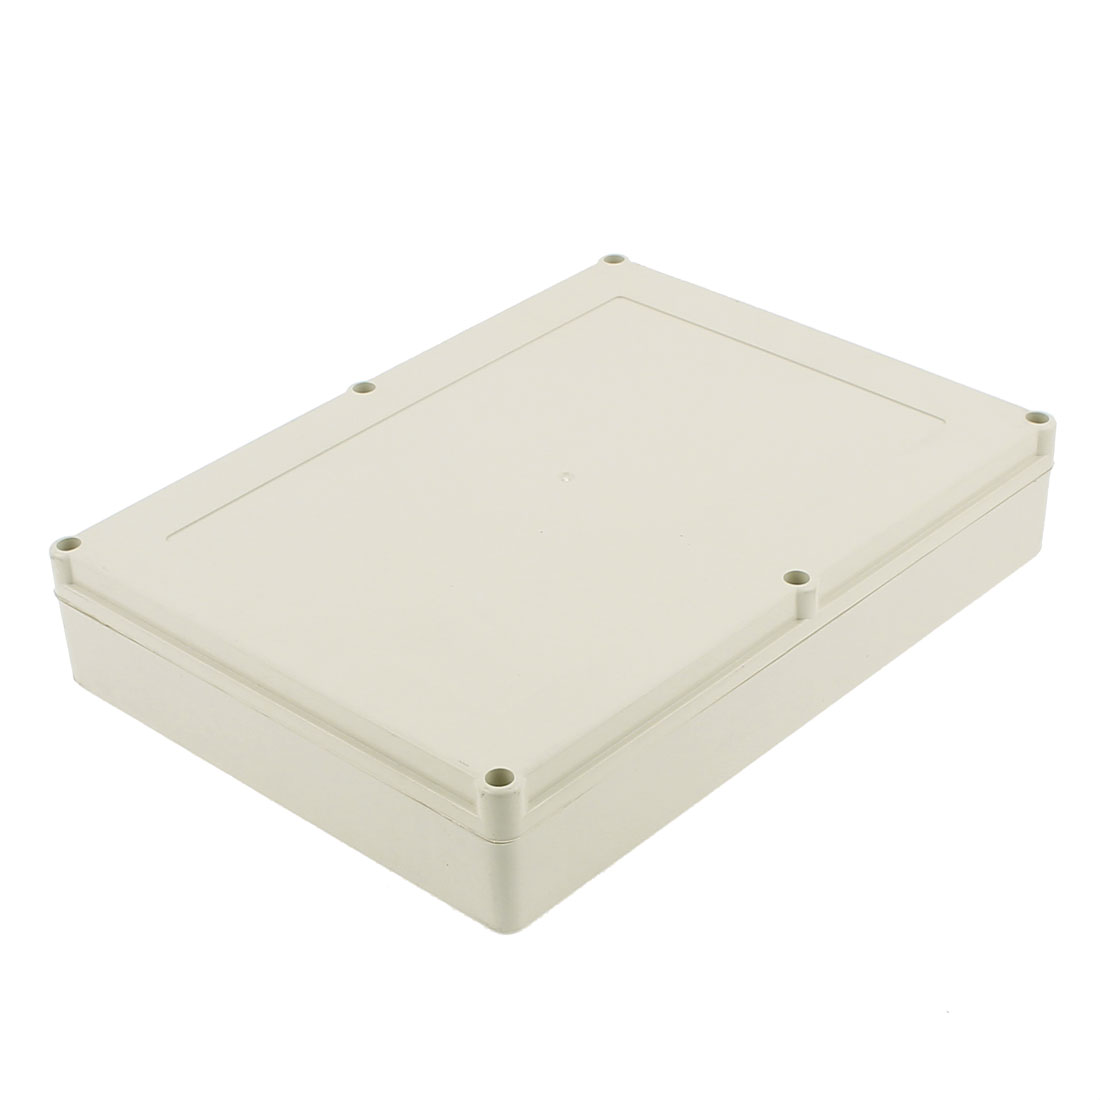 295 x 155 x 72mm Dustproof IP65 Junction Box Terminal Connecting Box Enclosure